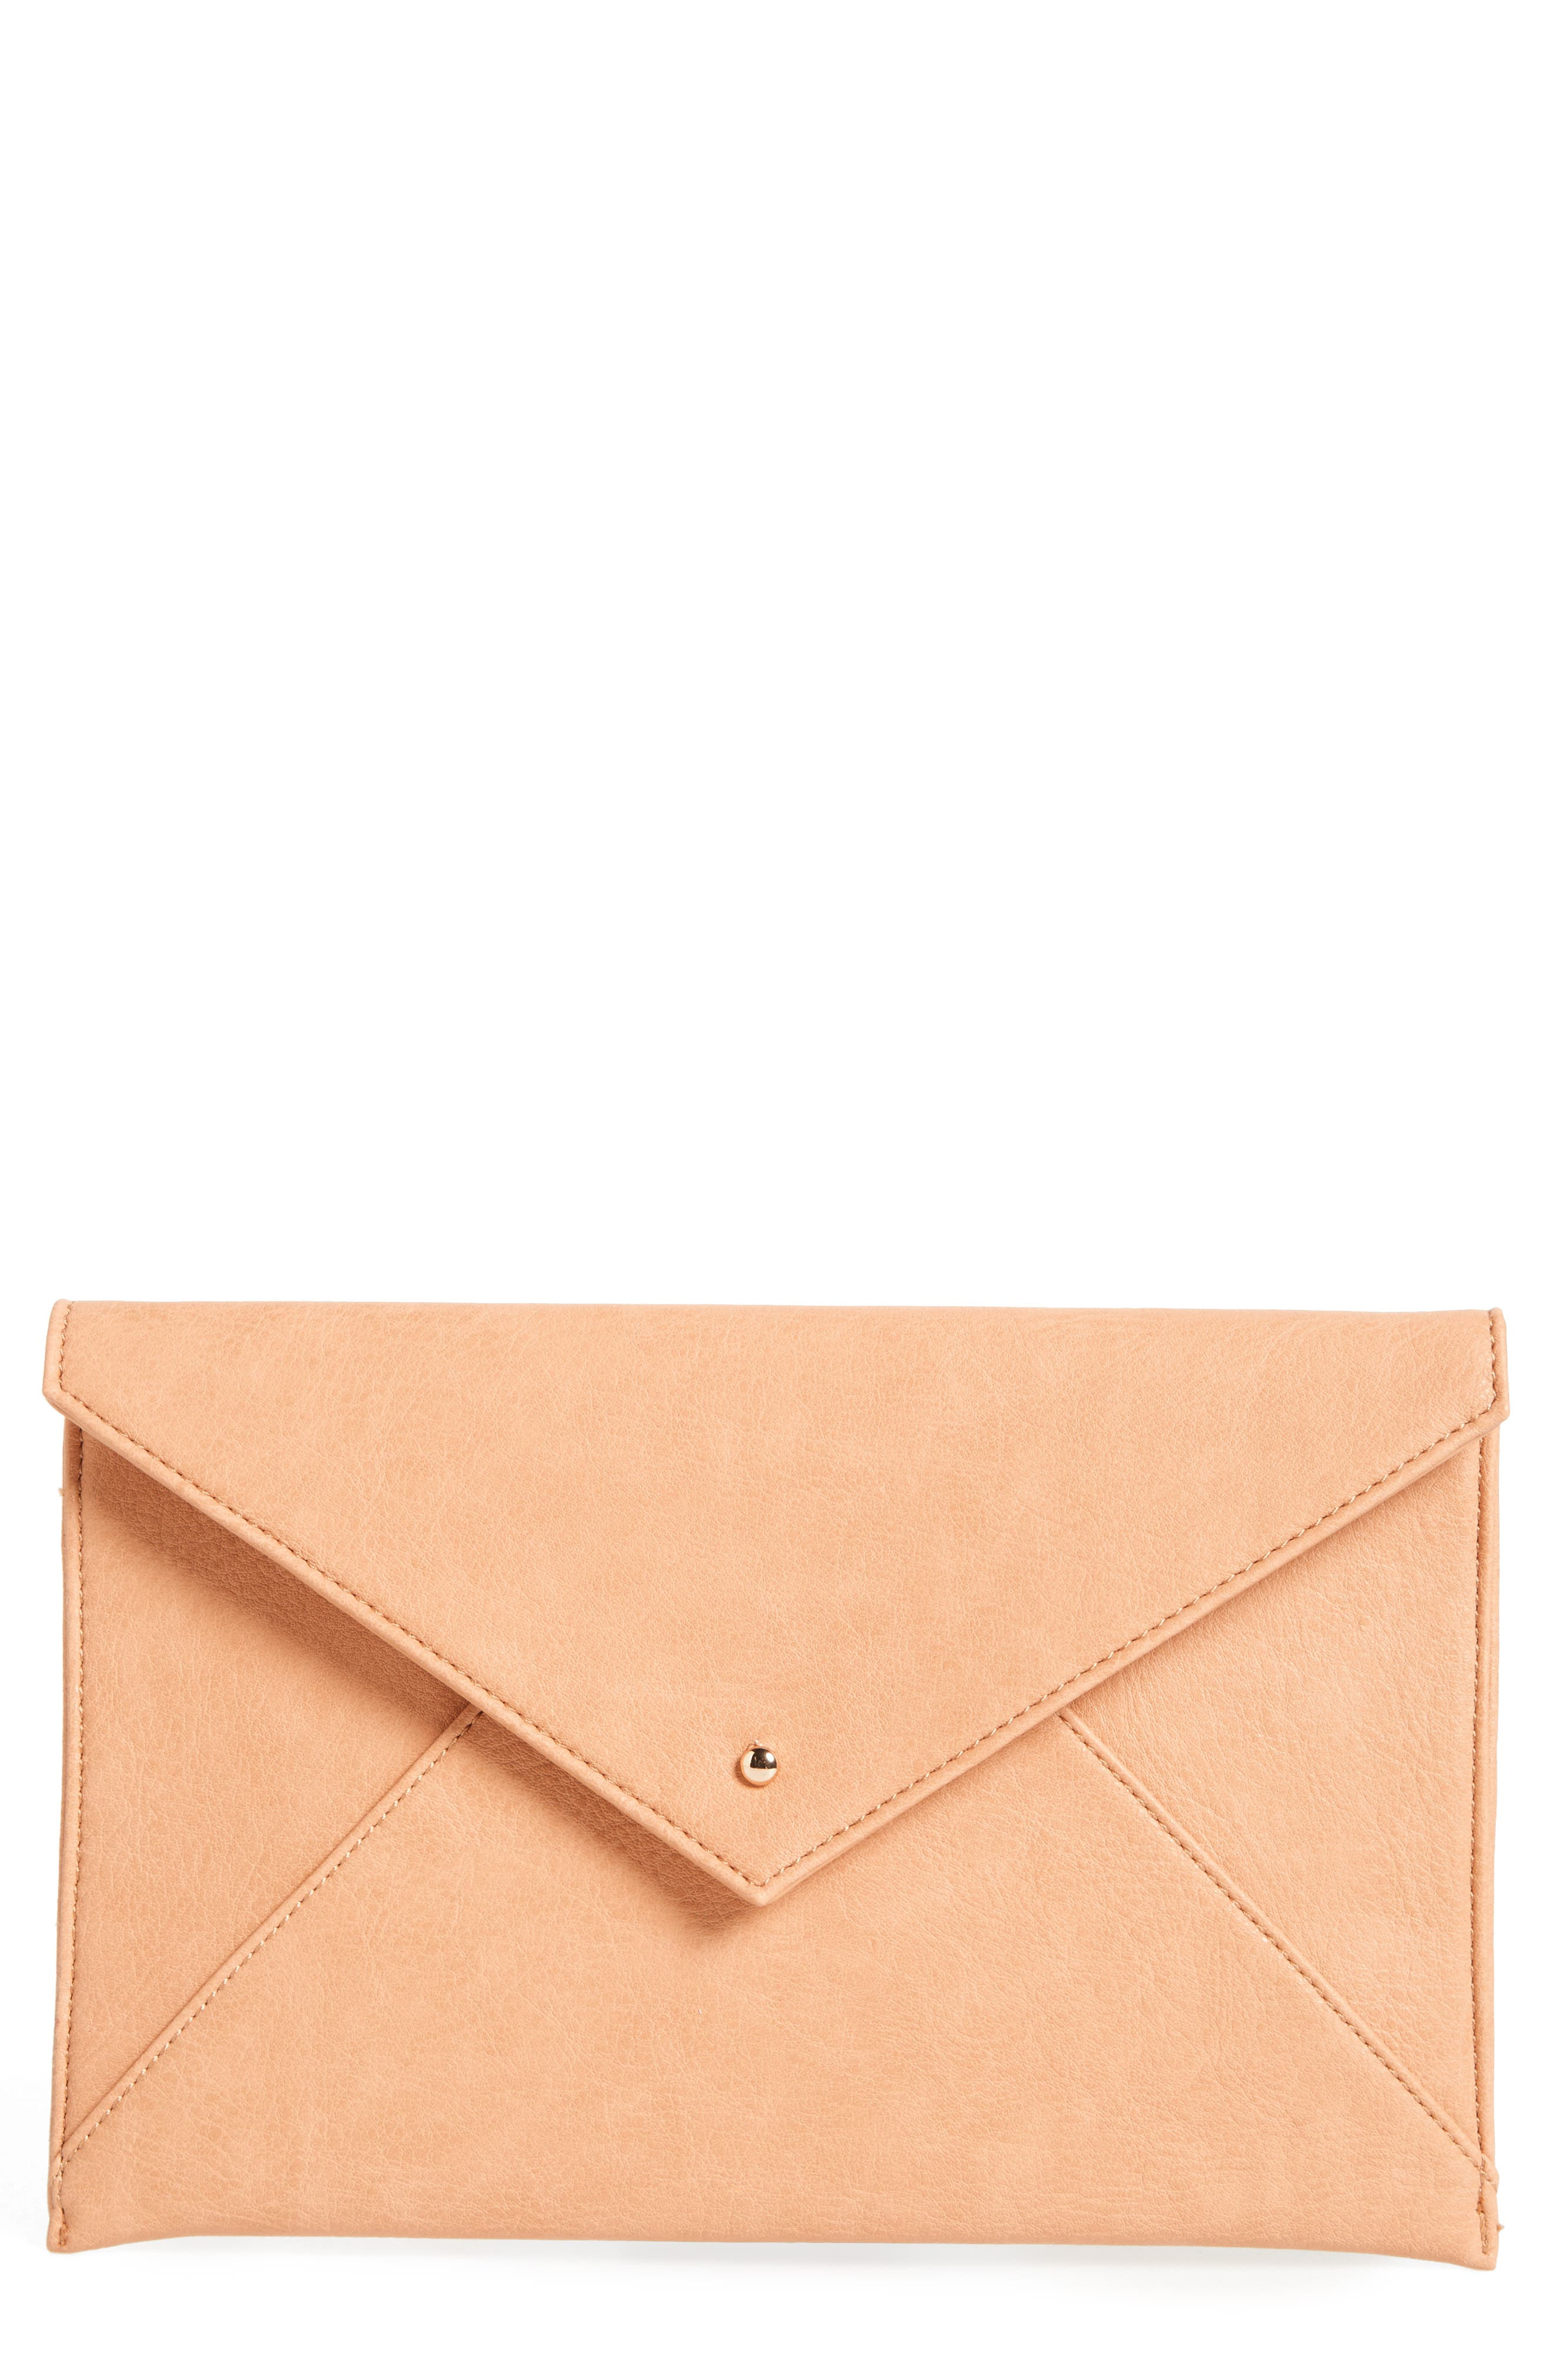 Main Image - BP. Faux Leather Envelope Clutch